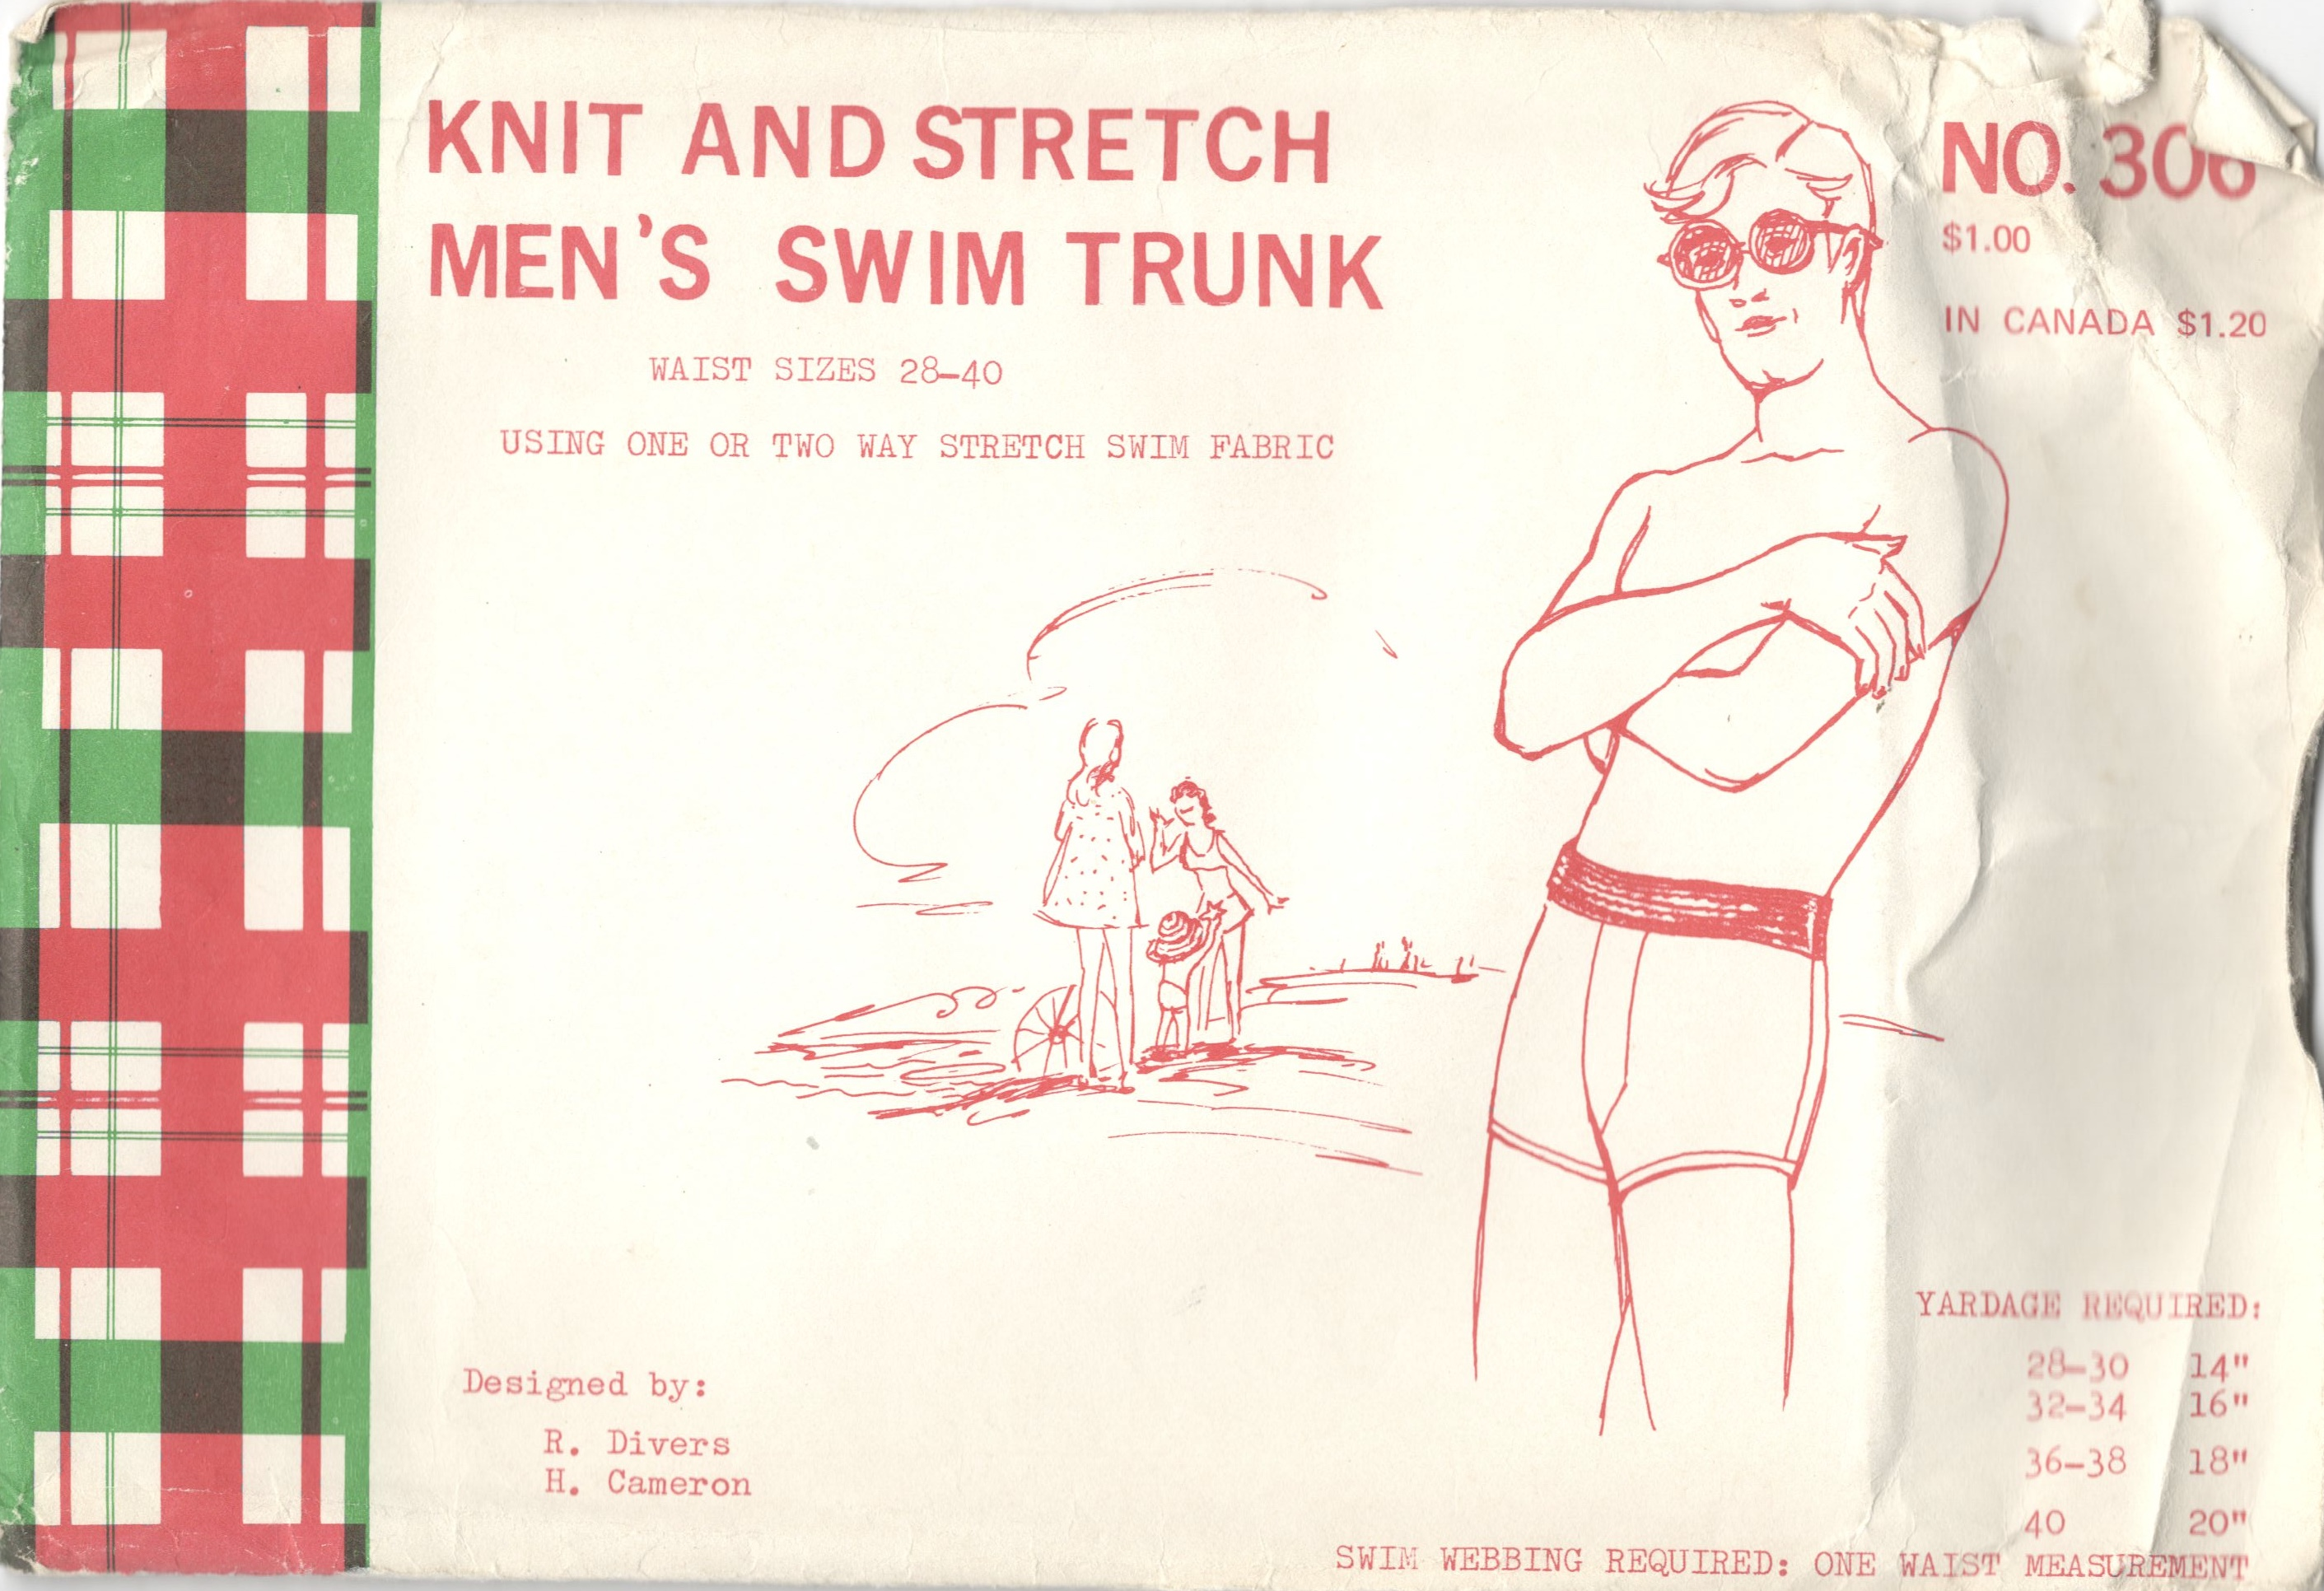 Knit and Stretch 306